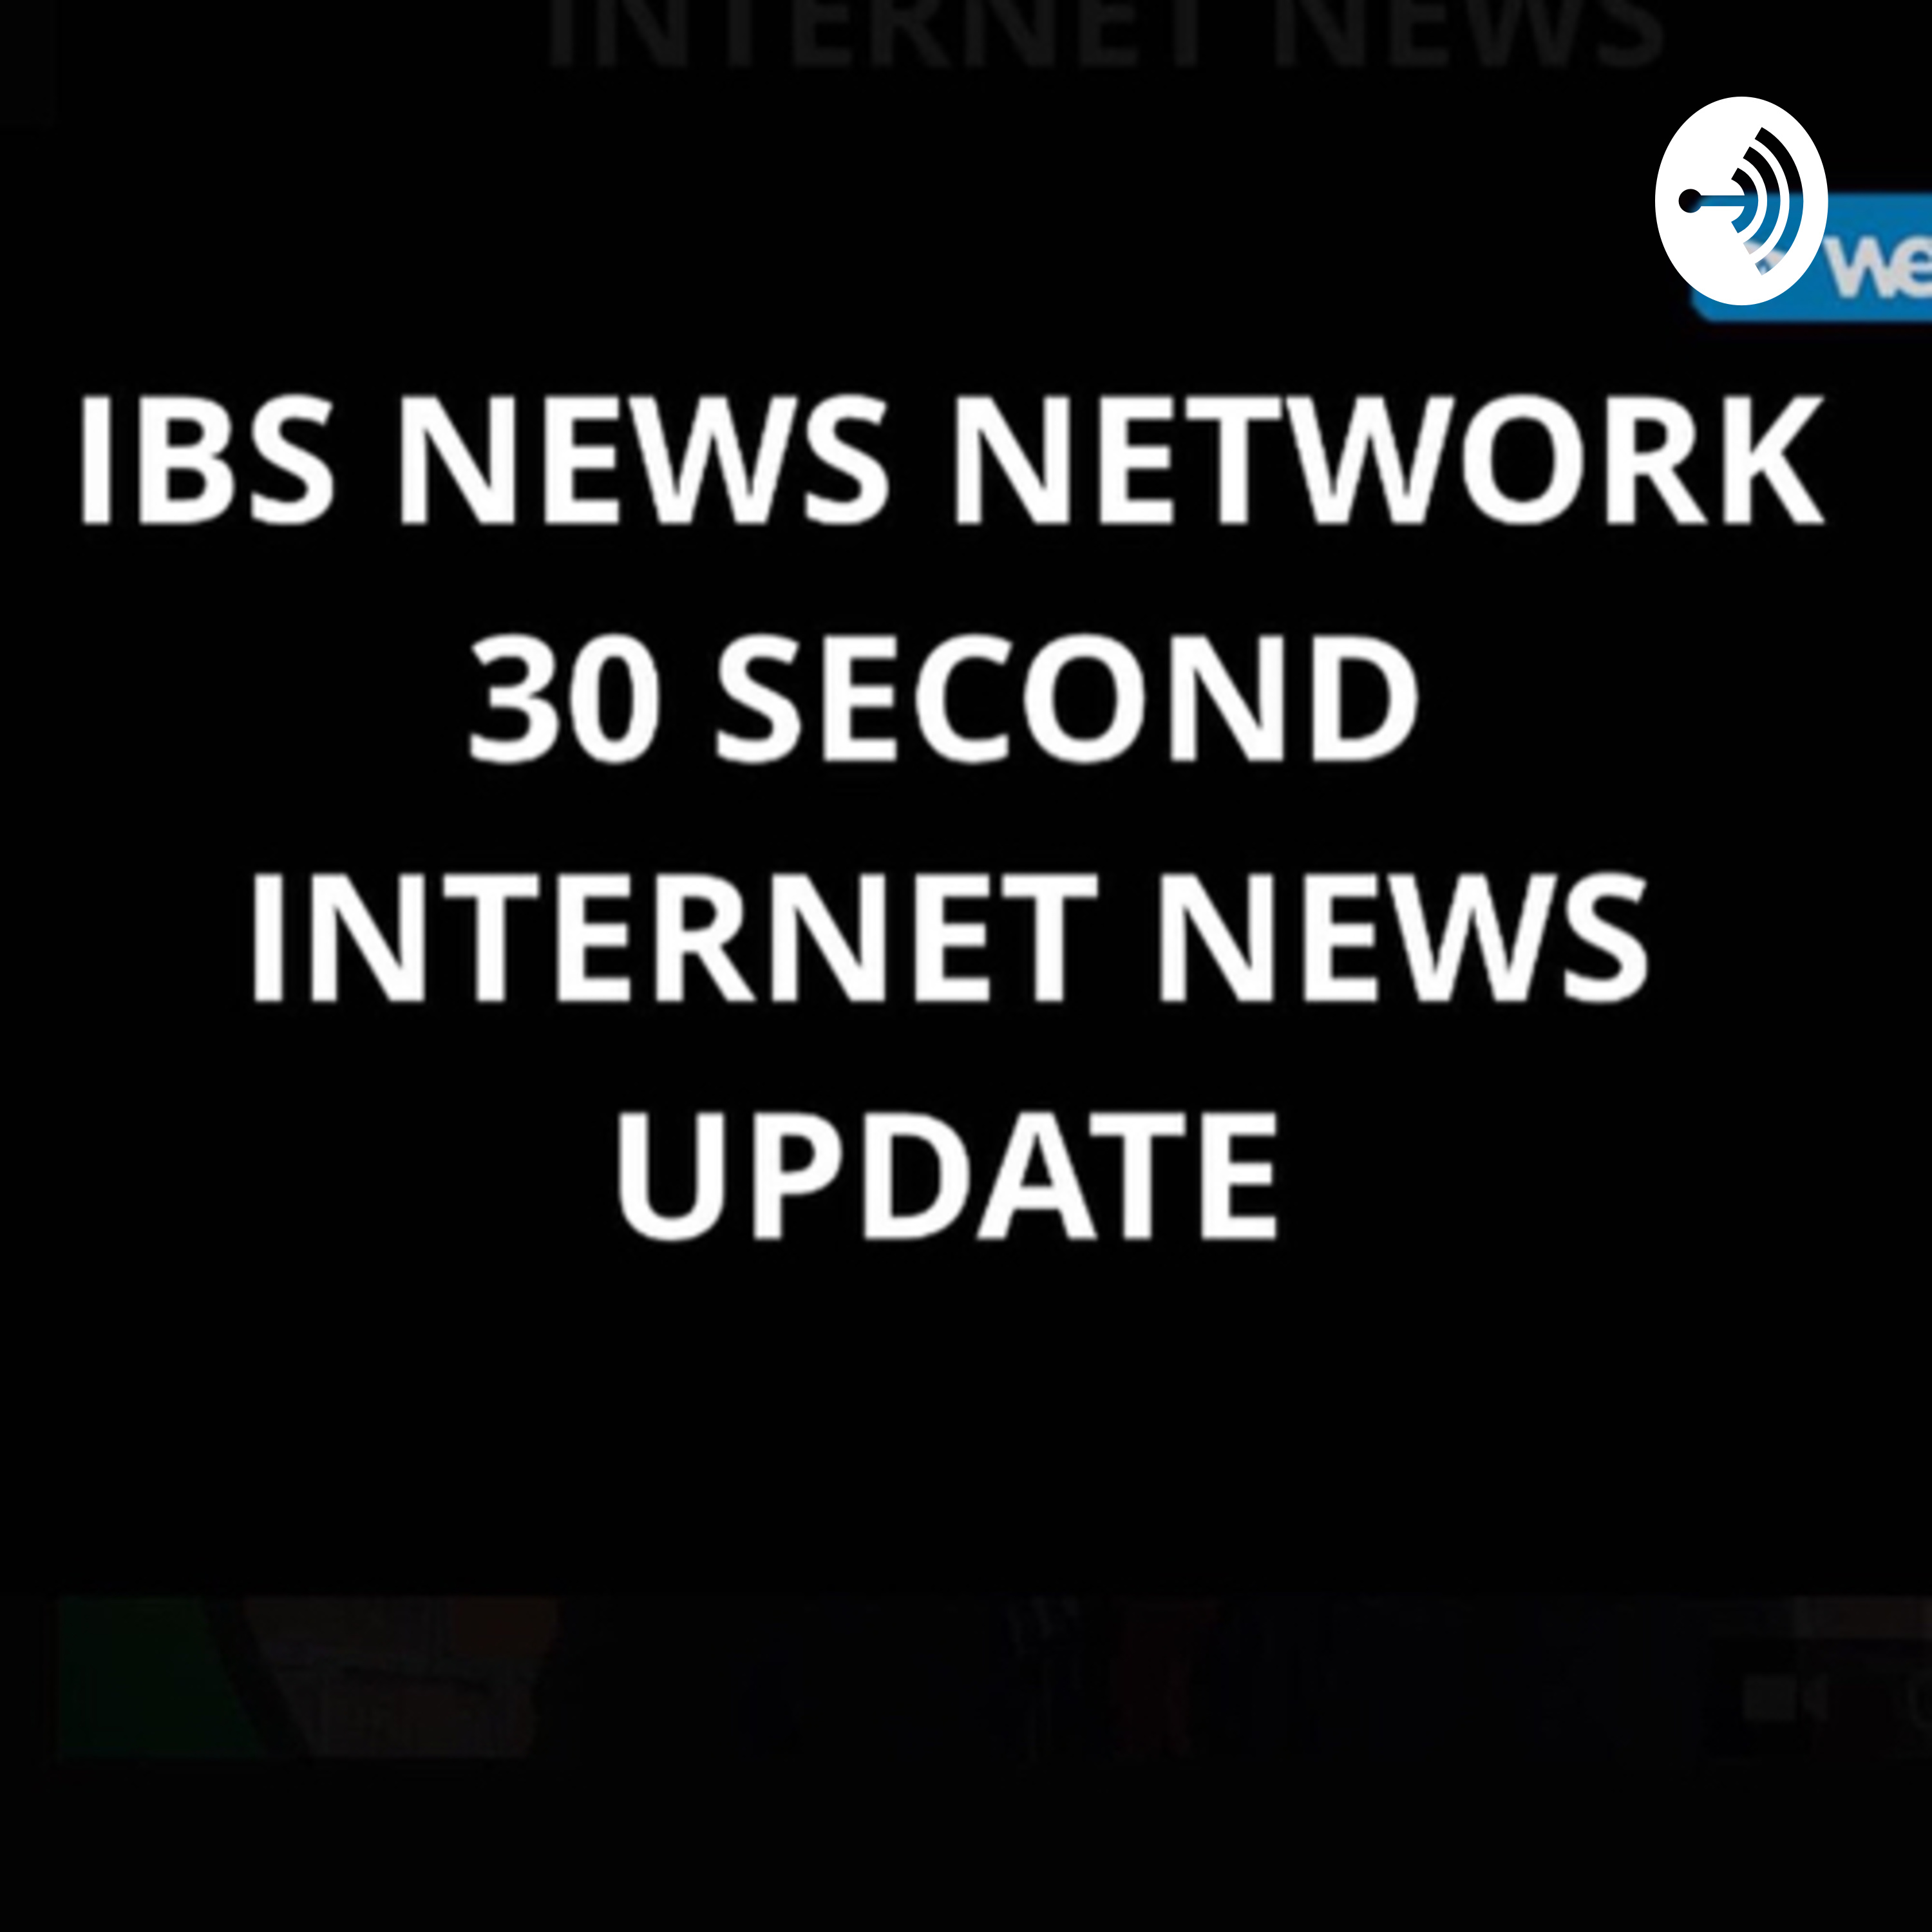 IBS NEWS NETWORK 30 SECOND INTERNET PODCAST NEWS UPDATE...